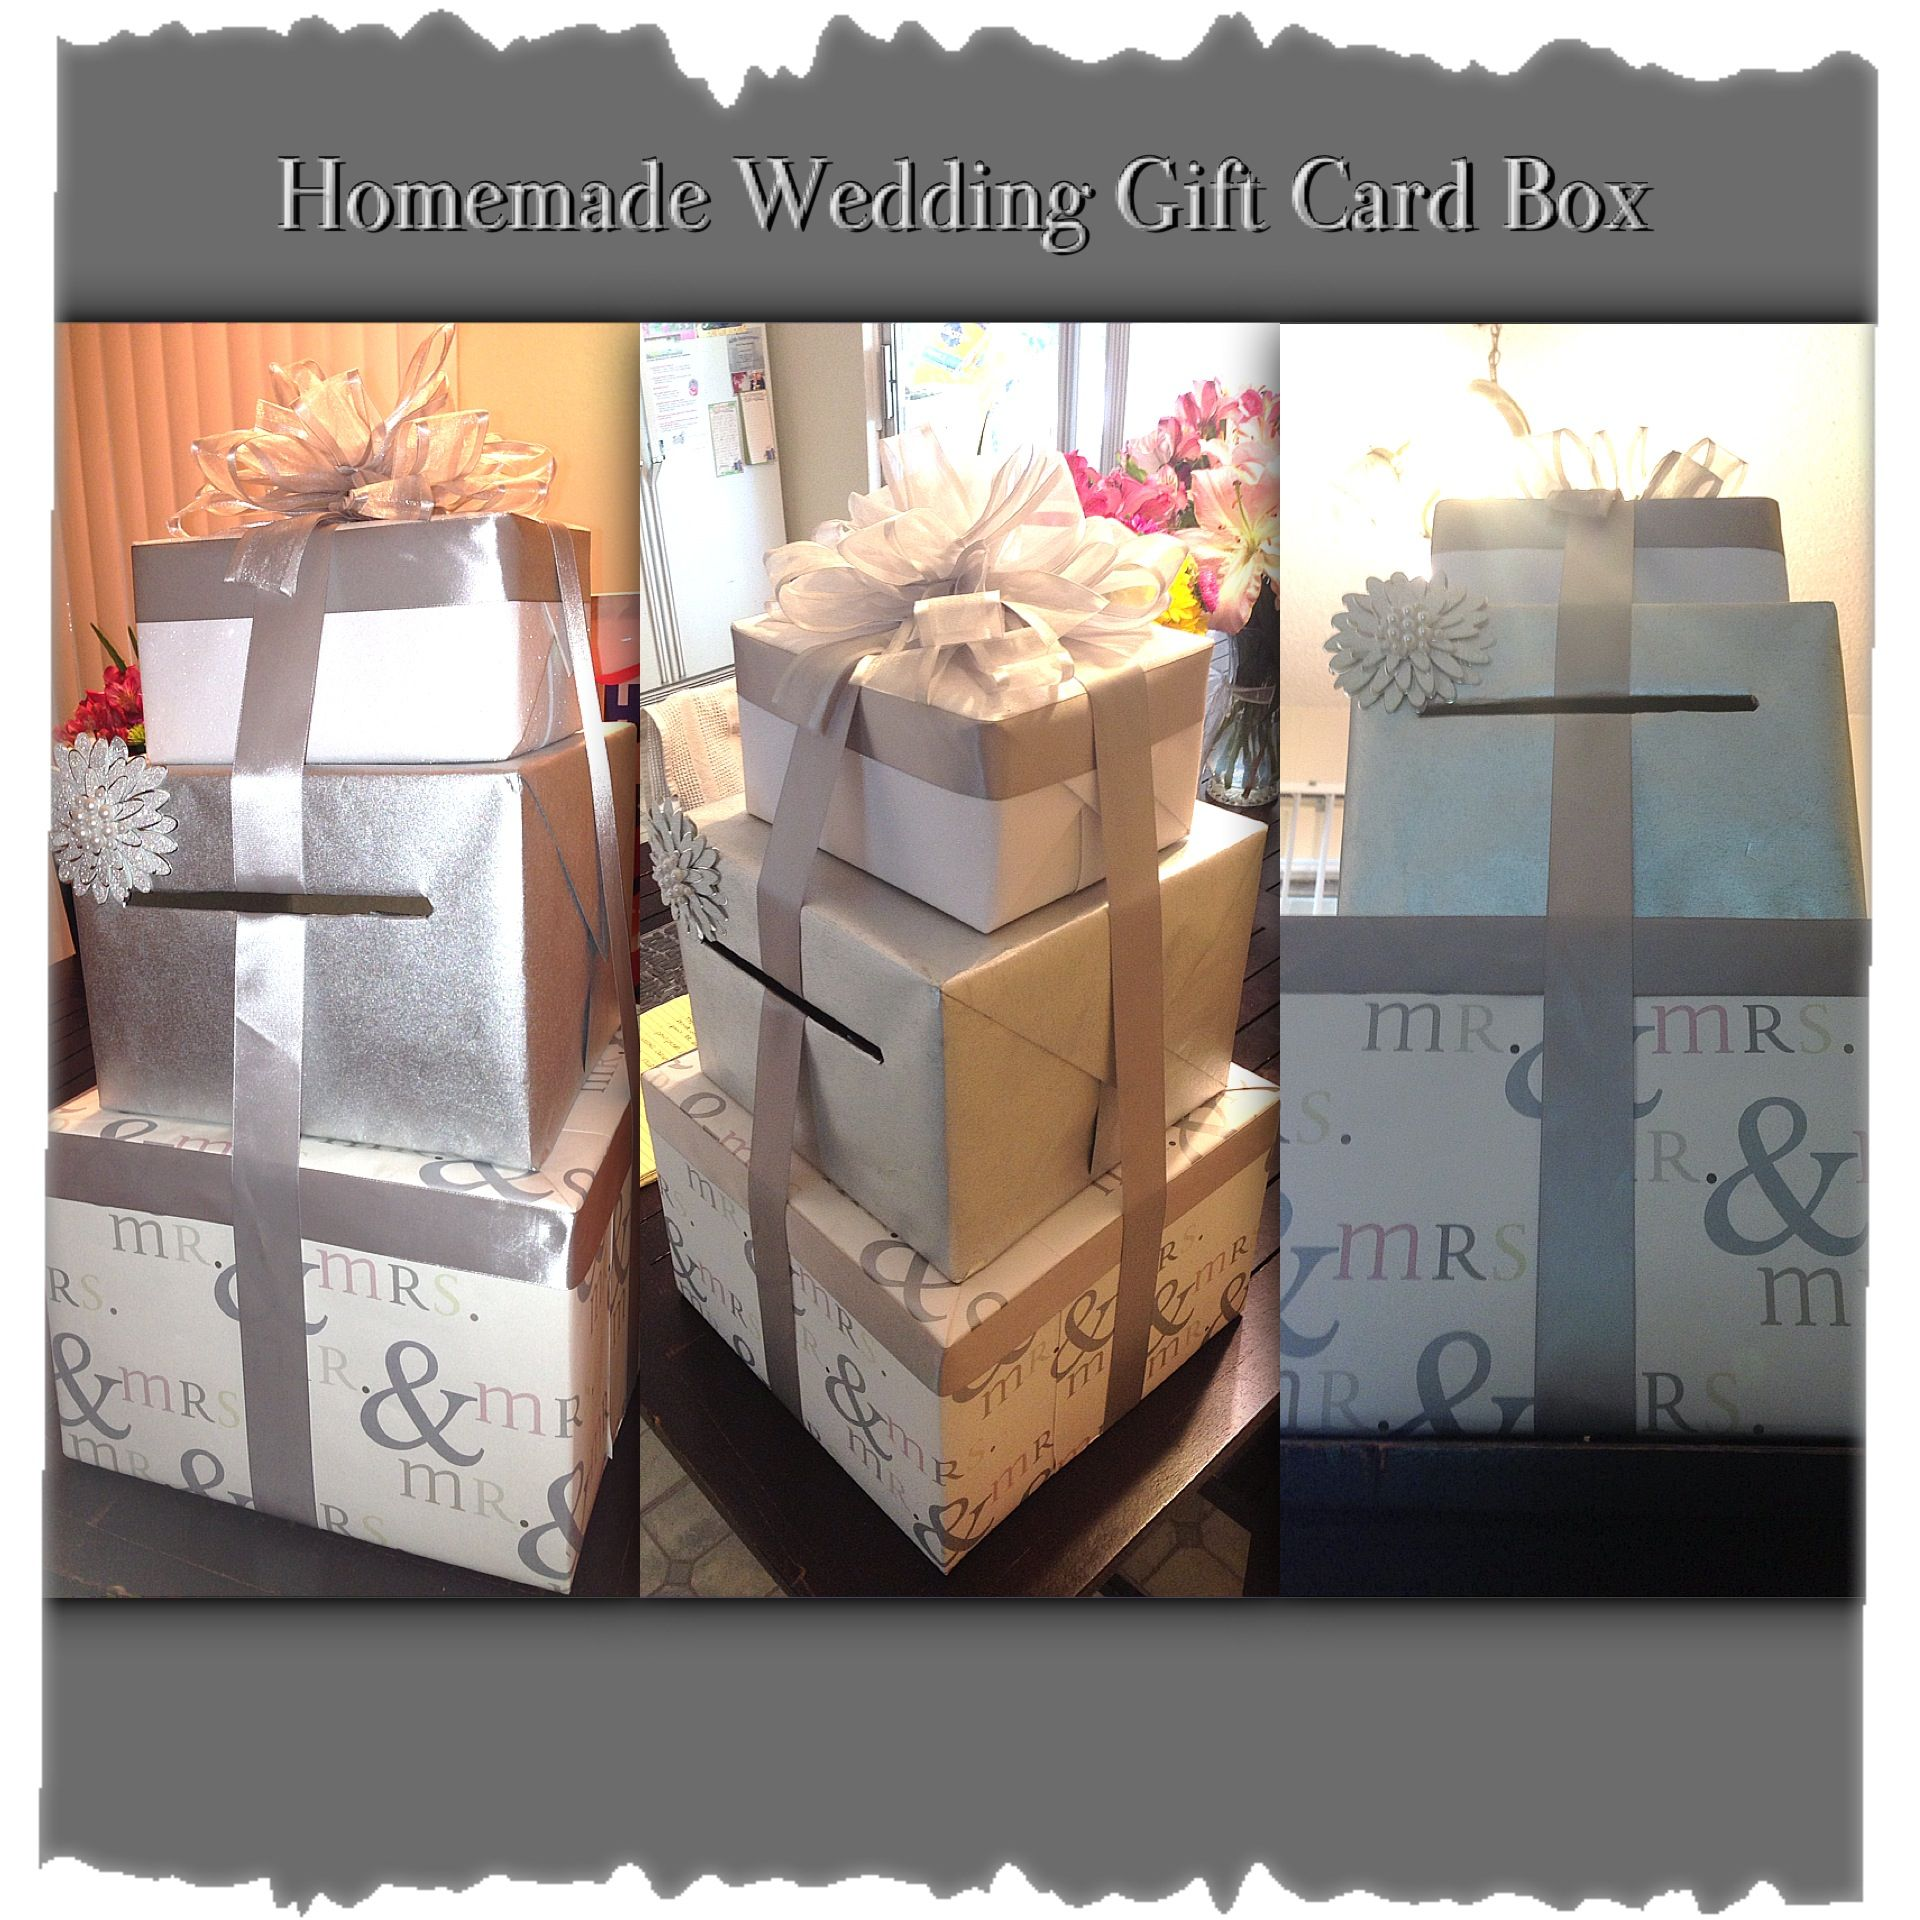 Wedding Card Boxes Hobby Lobby Share Wedding Gift Card Box